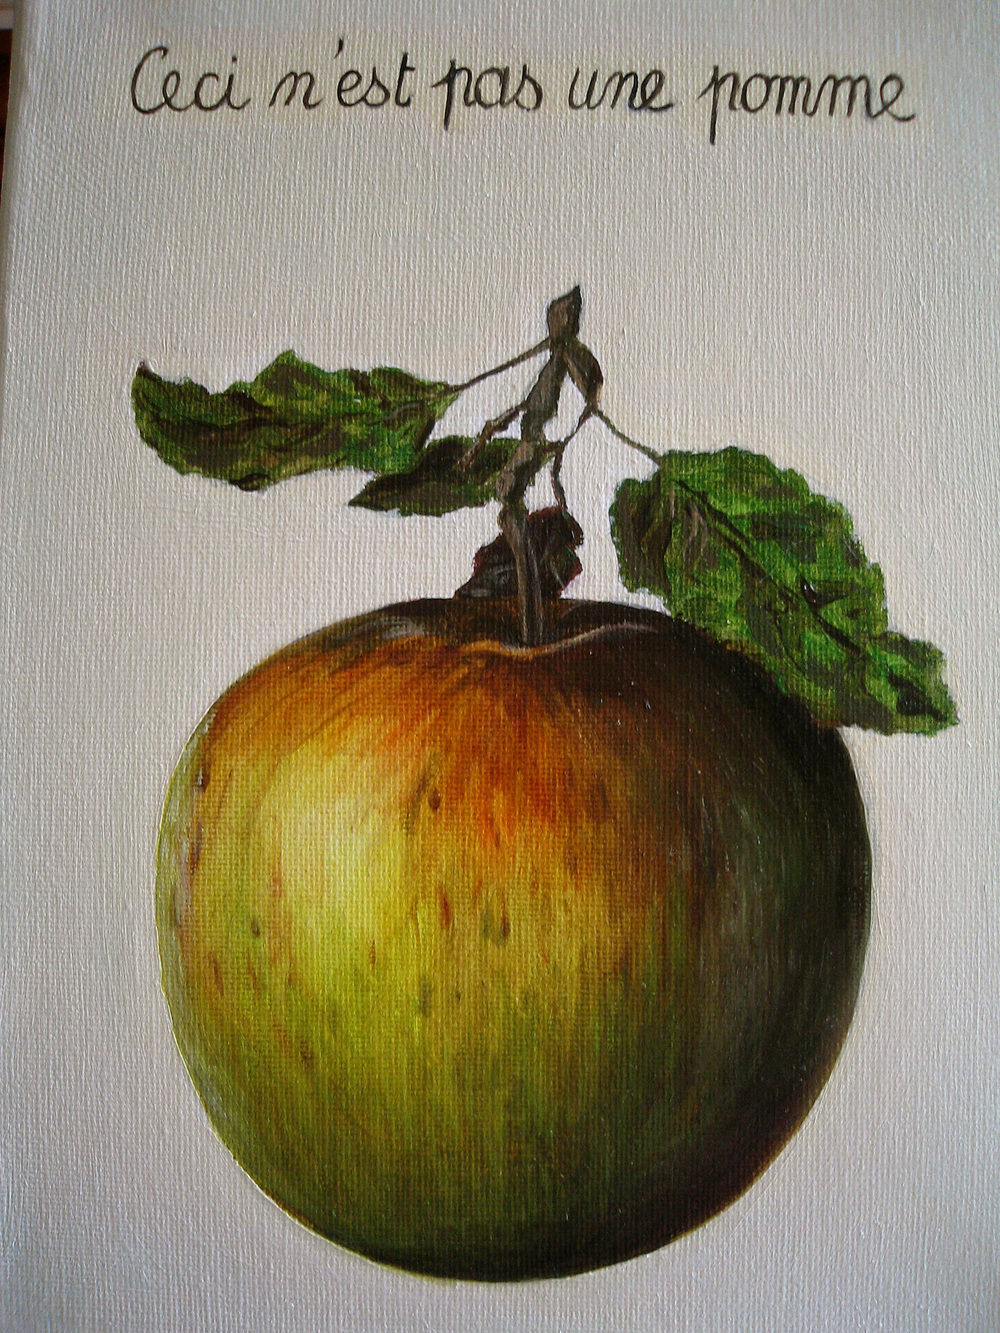 This is a picturepainting of an appleberry that says it is not an appleberry!! Artsyfartsy!!